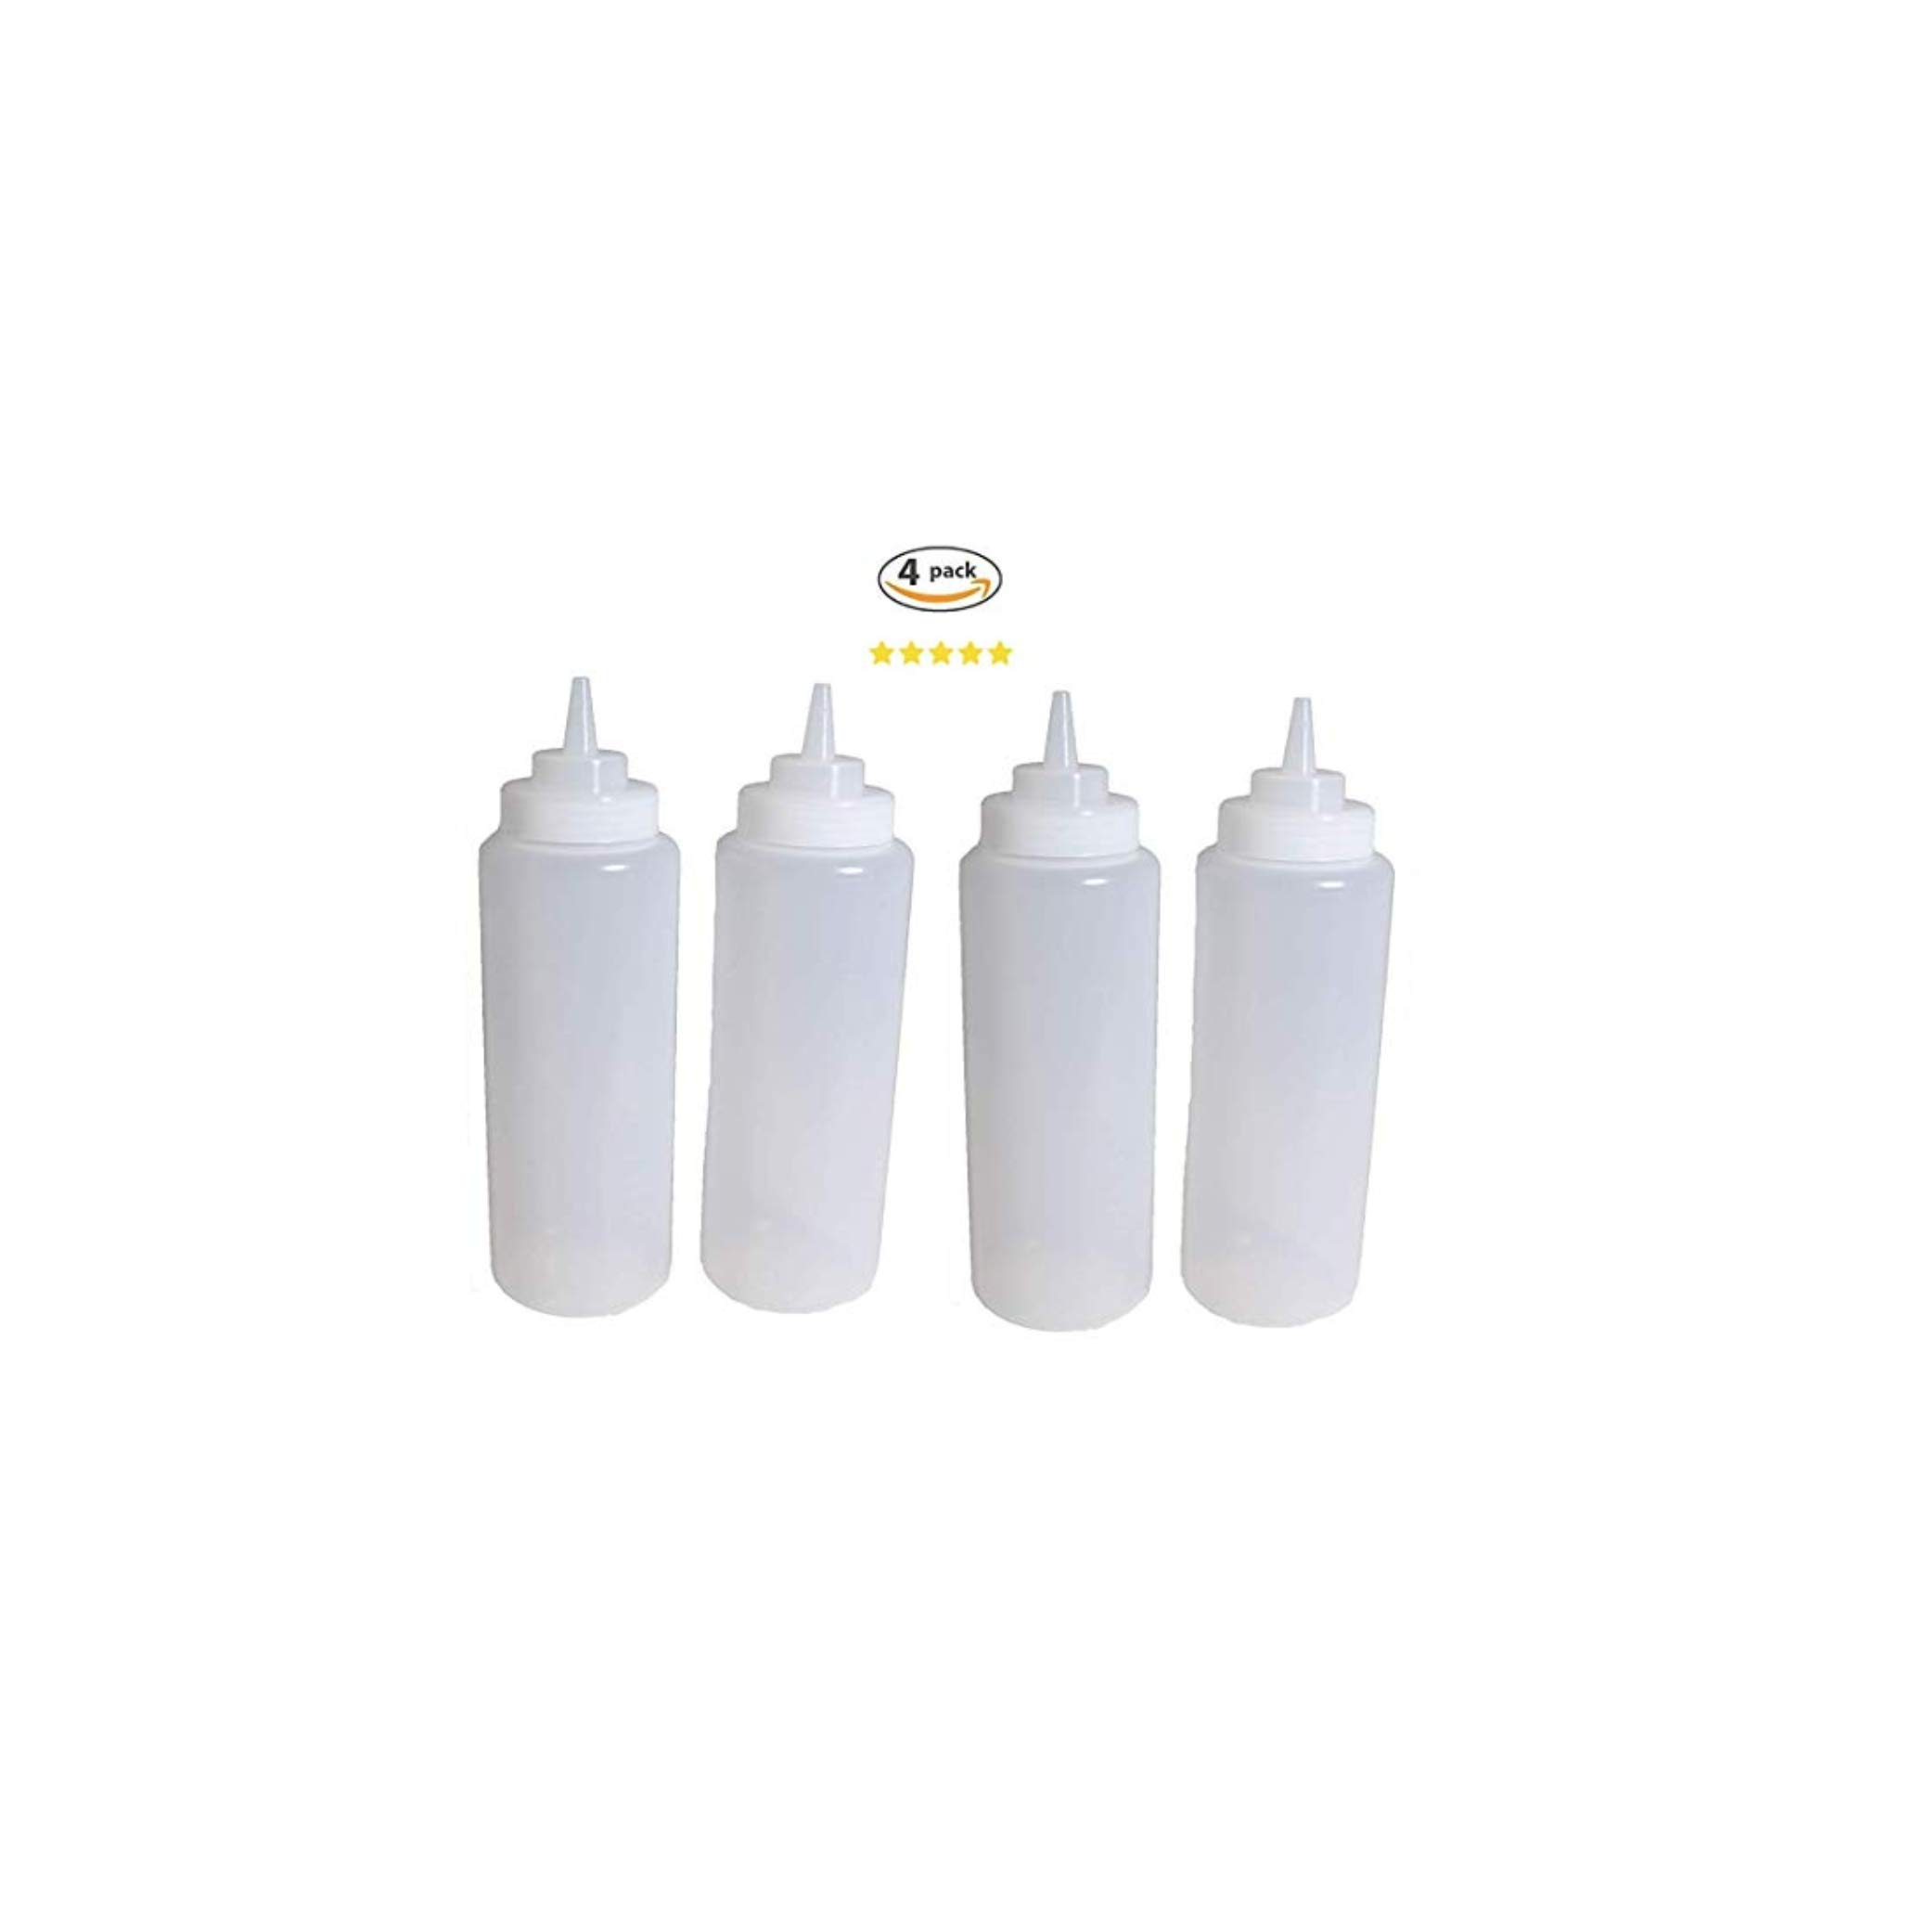 4 Plastic Squeeze Bottles. Clear Condiment Bottles. Ketchup. Mustard, Oil Squeeze Bottle. BBQ Grill Kitchen Cookout Storage Squeeze Bottles.